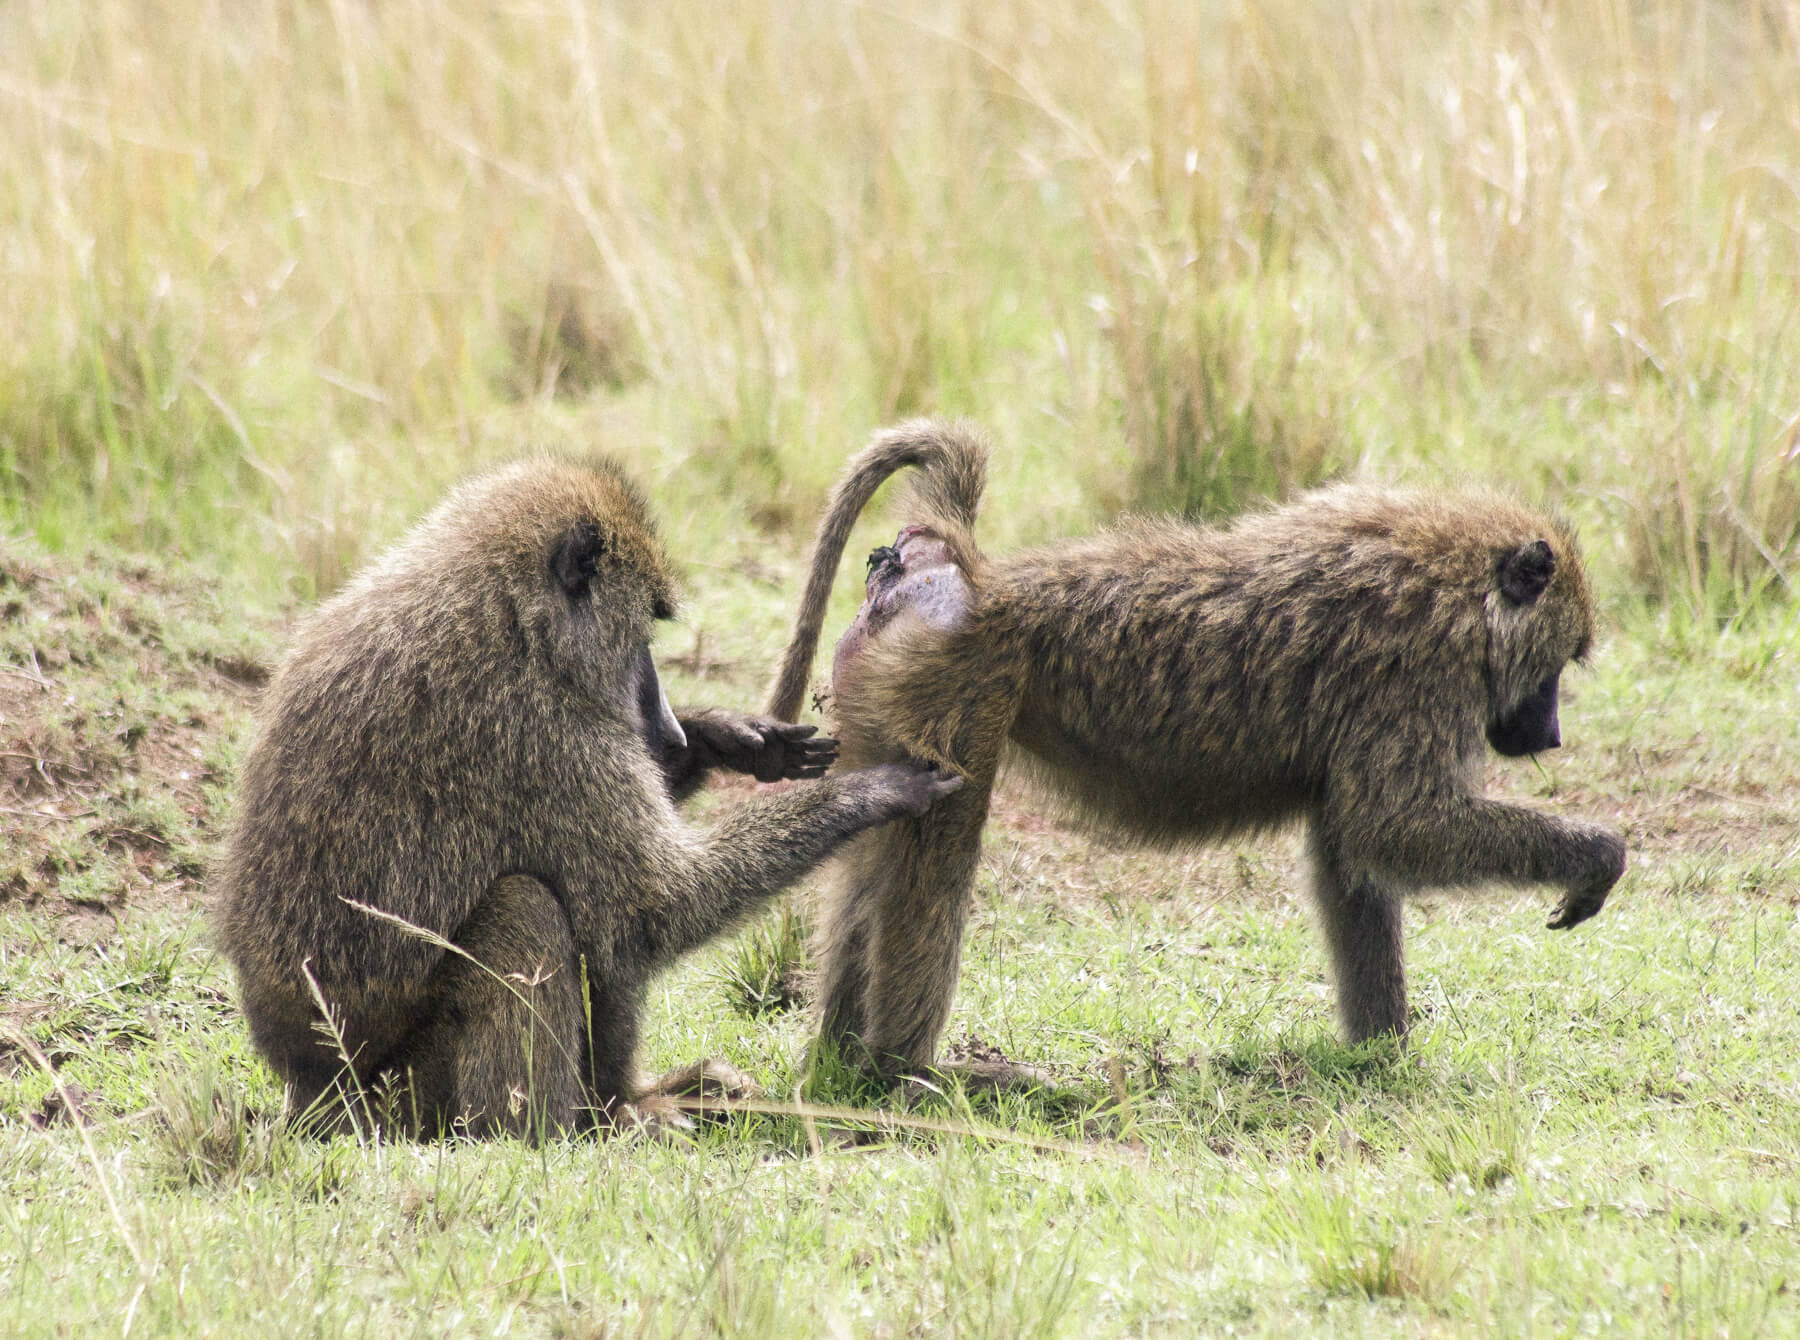 A male baboon grooming a females bottom while she eats grass